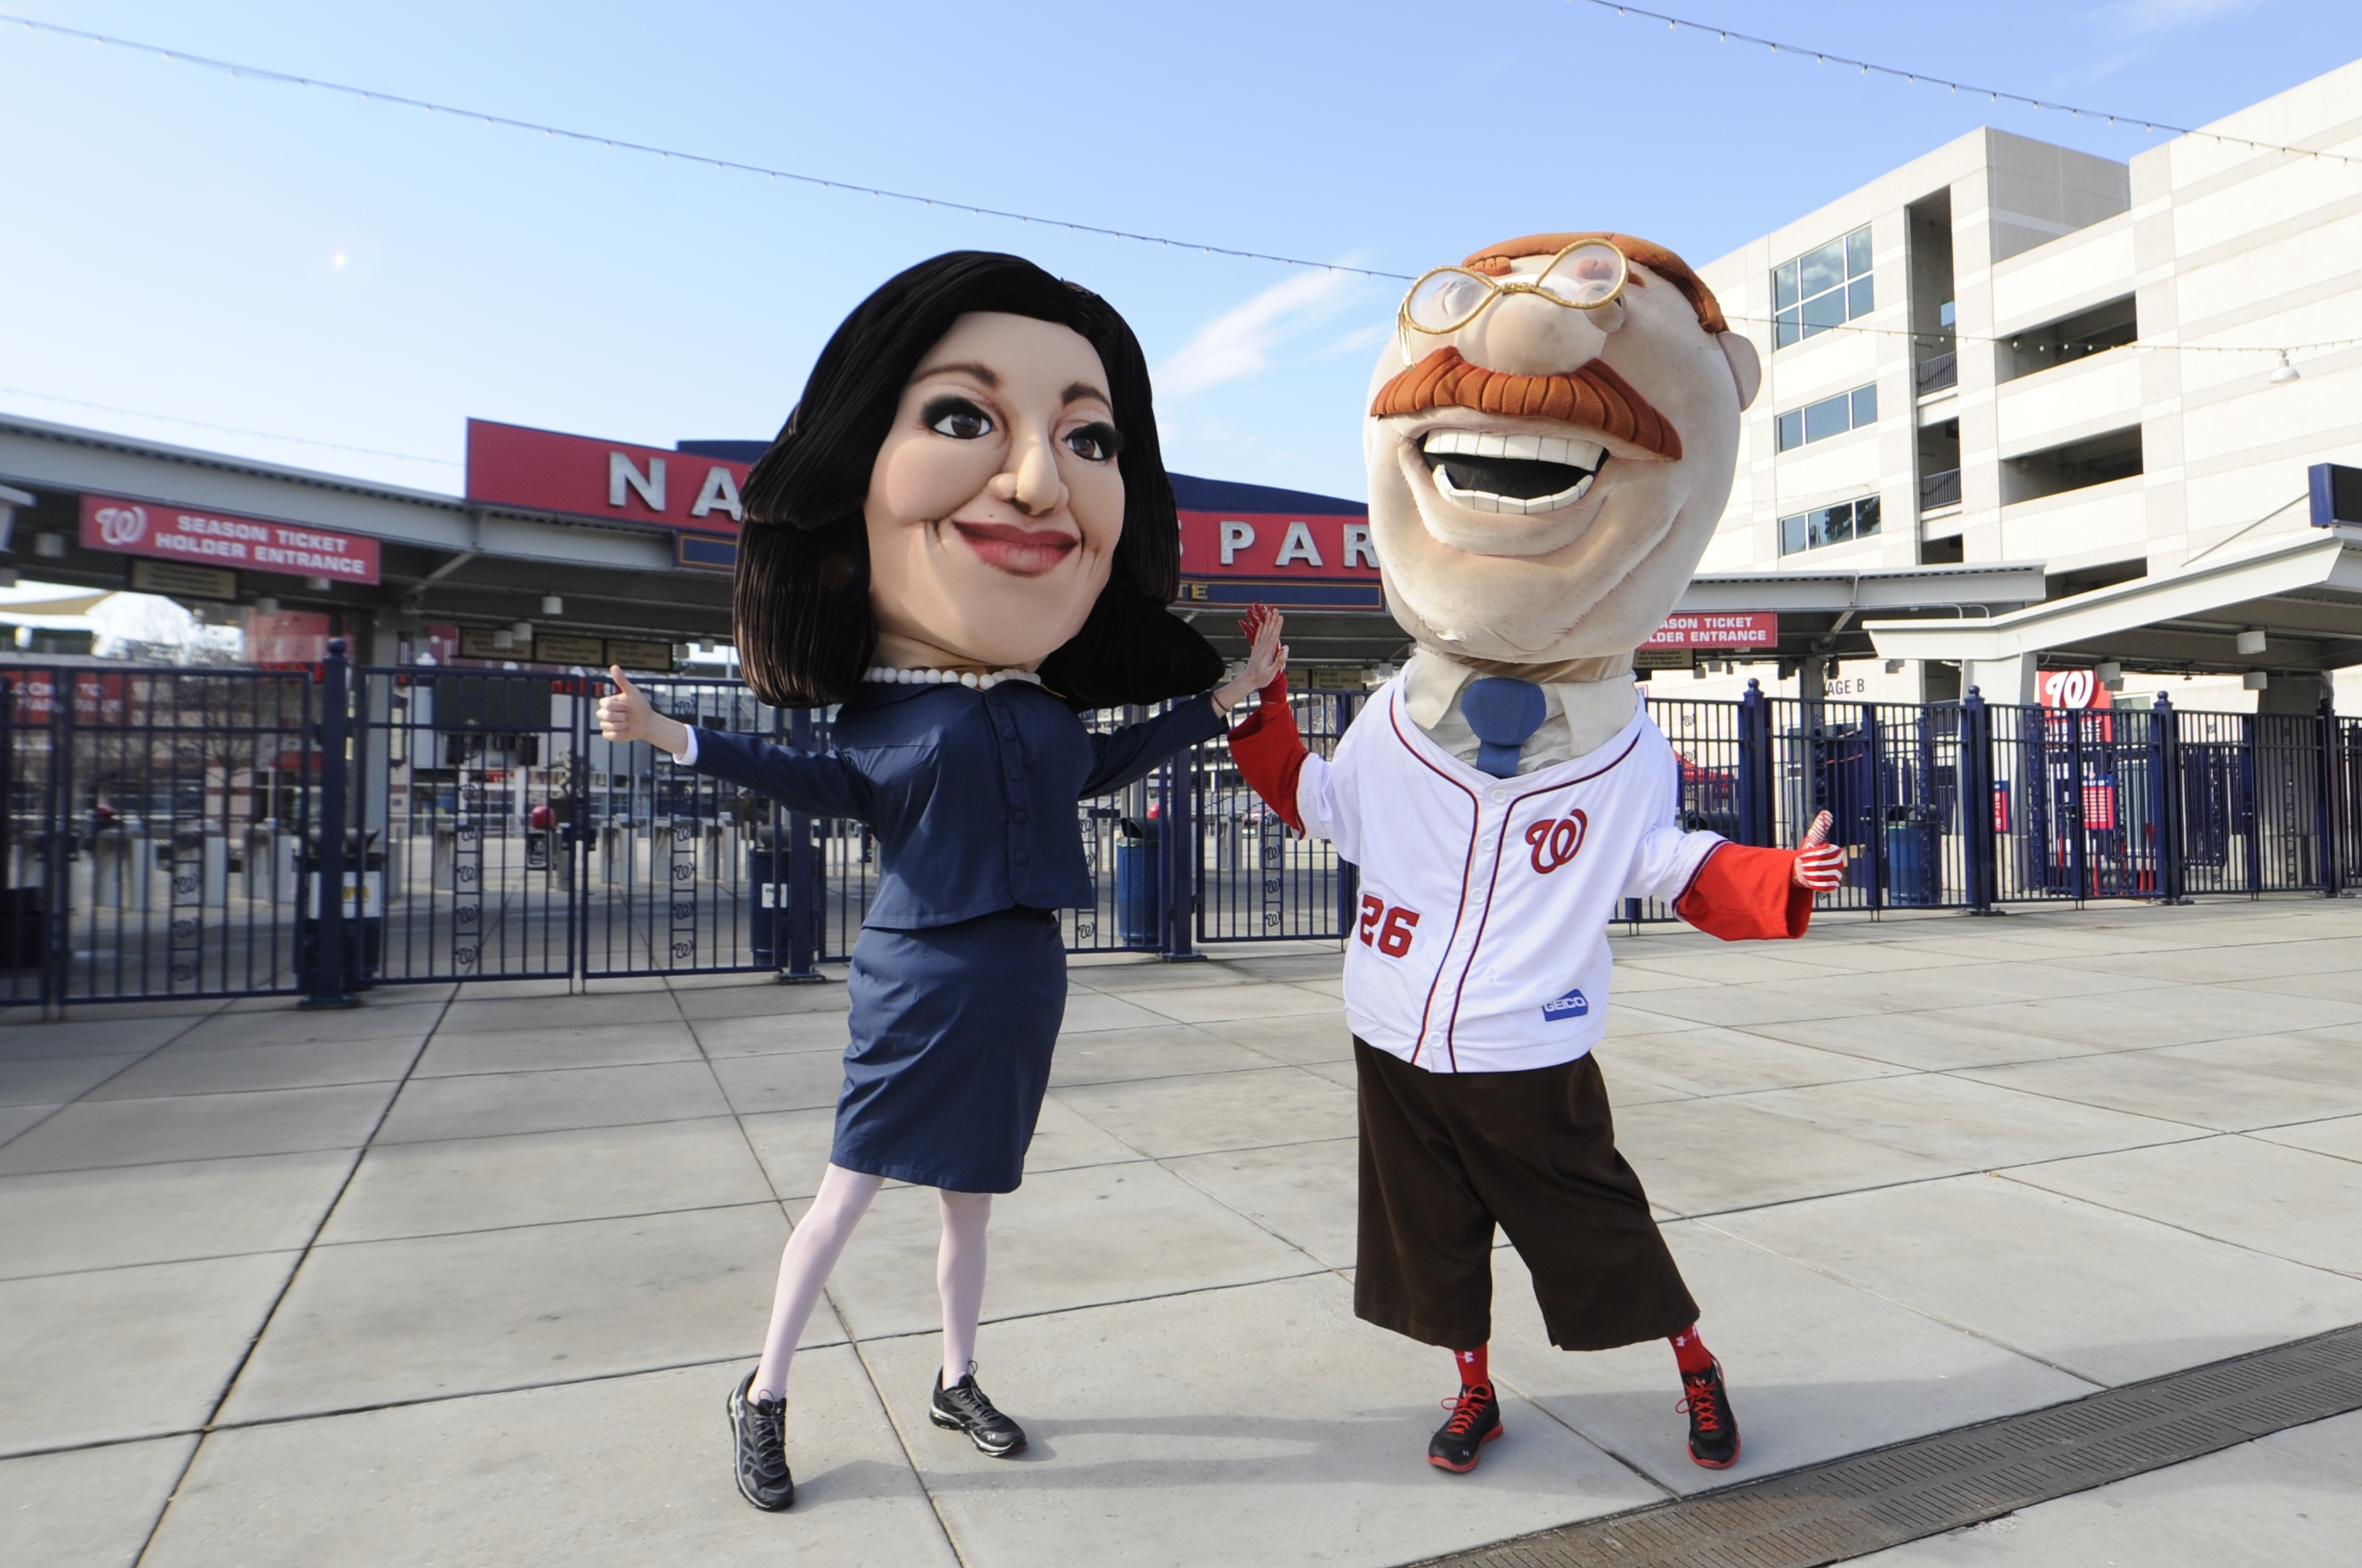 'Veep' races the presidents at Nationals Park